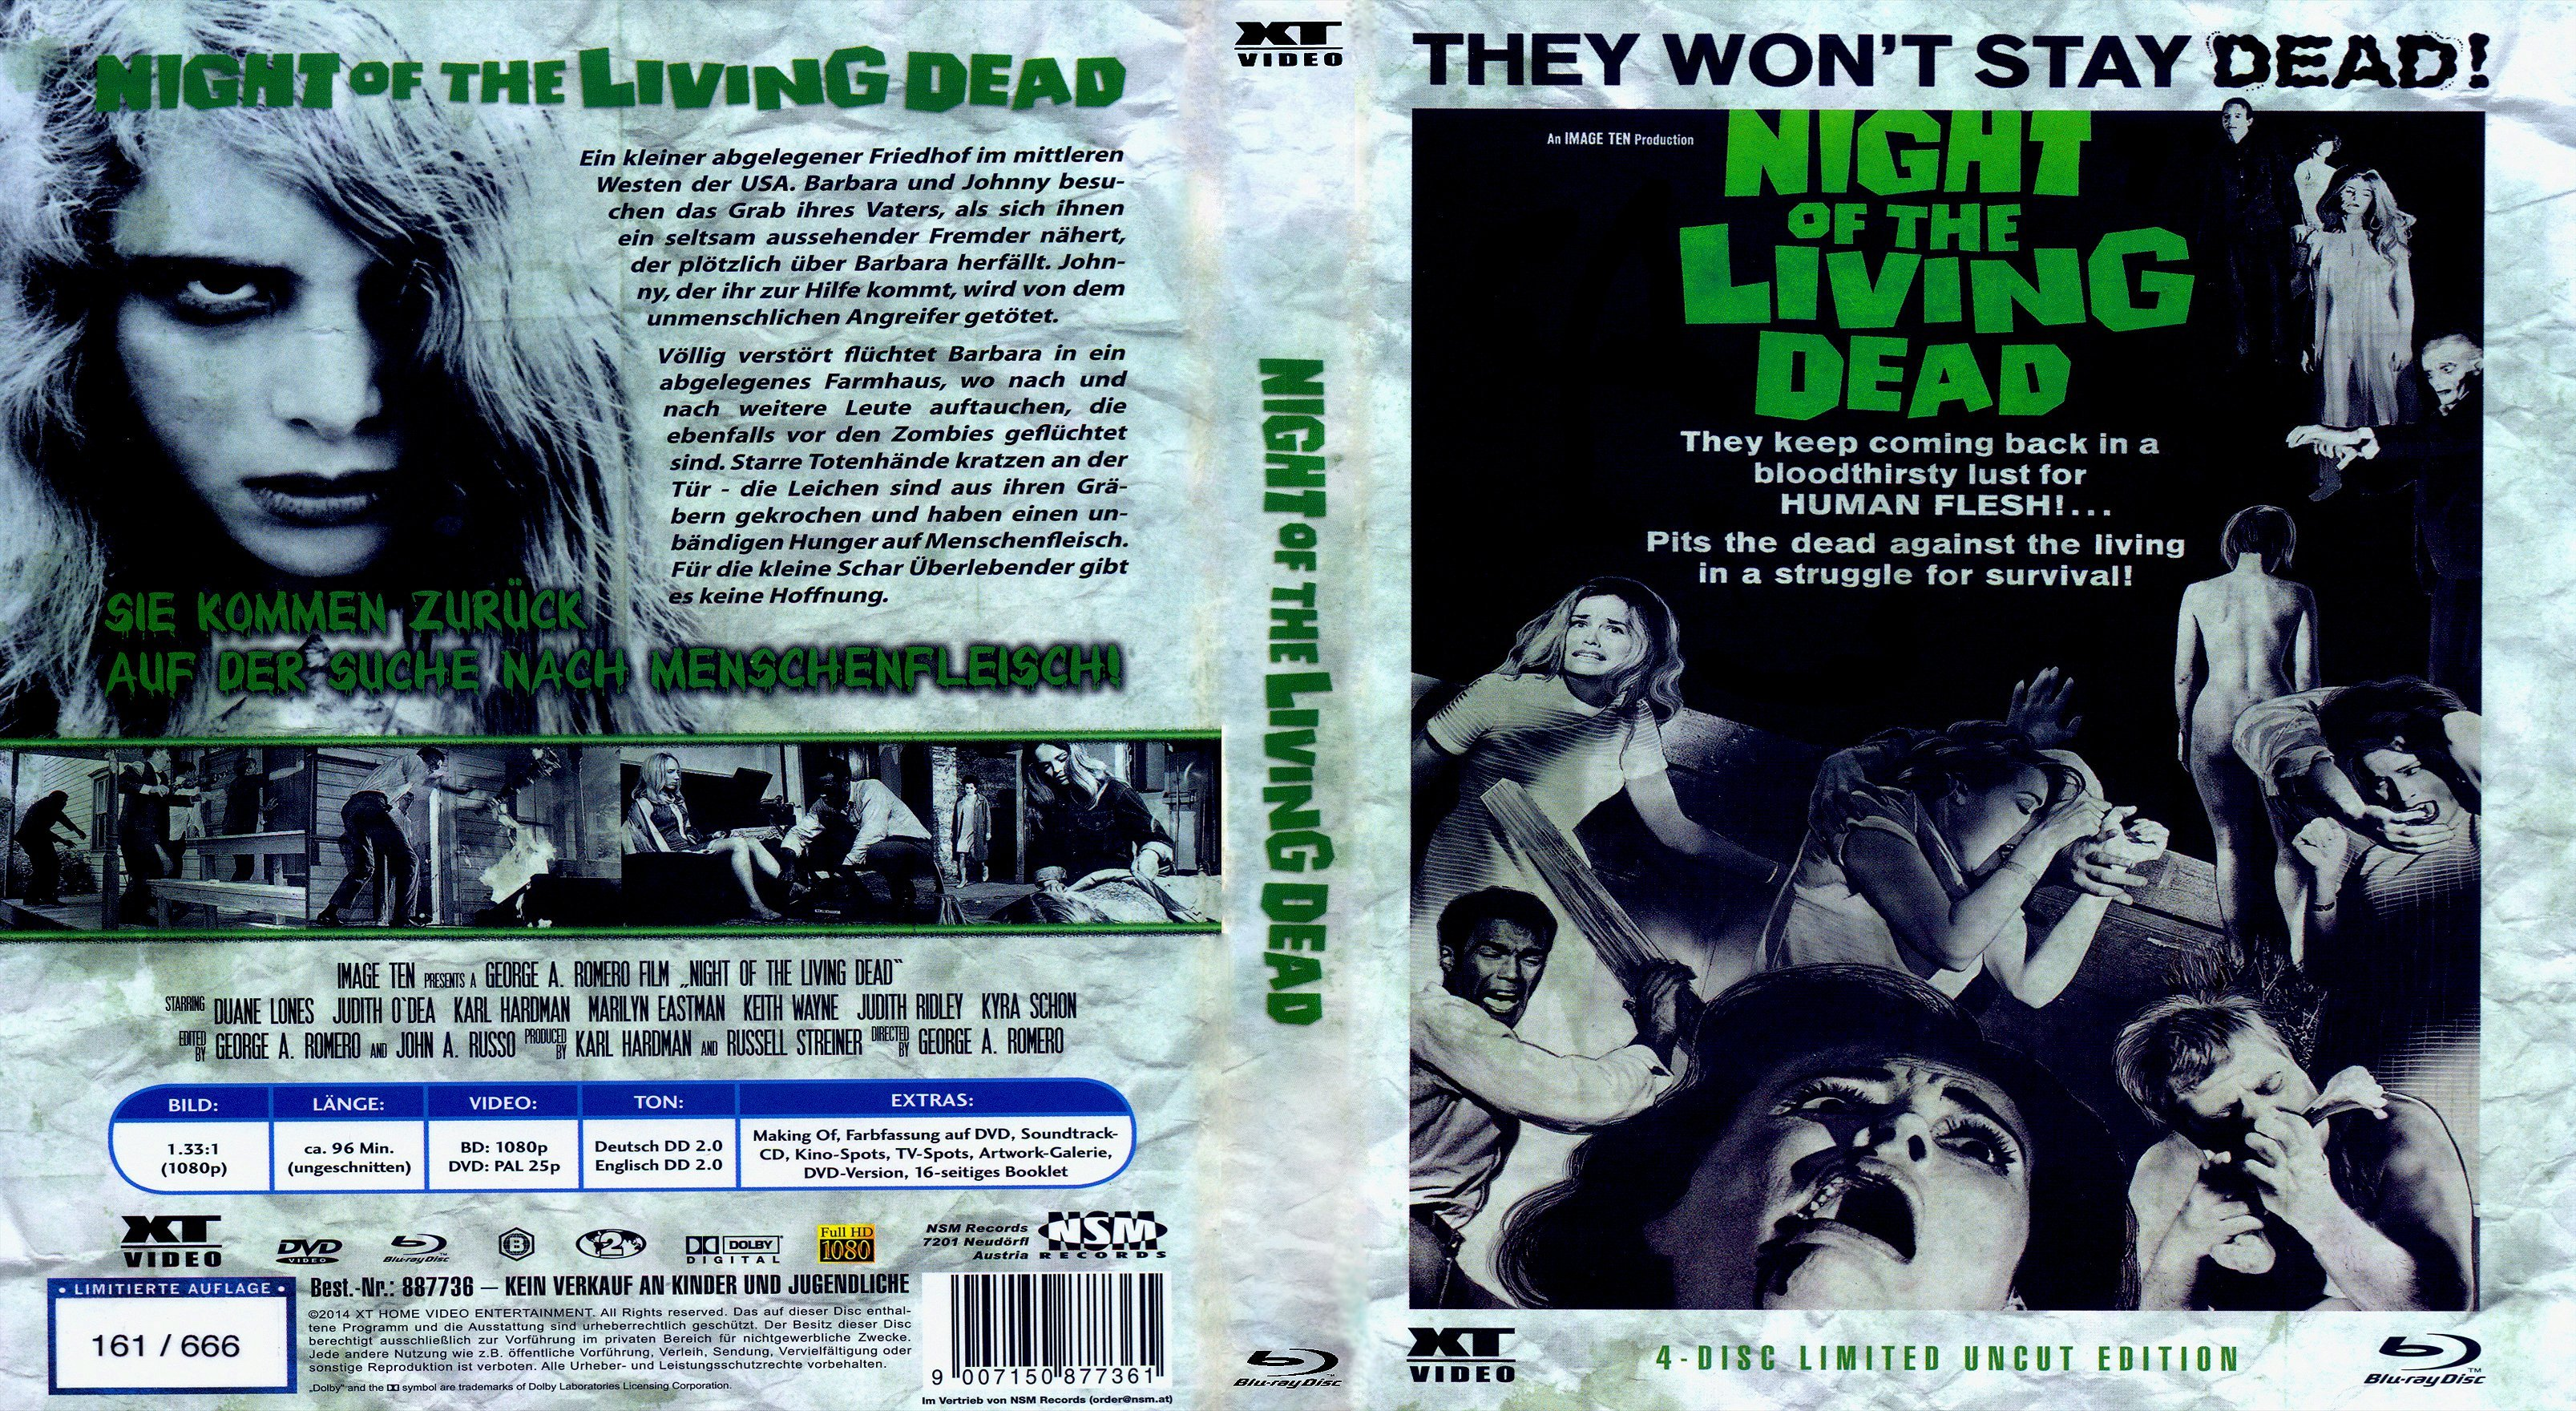 a comparison of world war z by max brook and night of the living dead by george romero